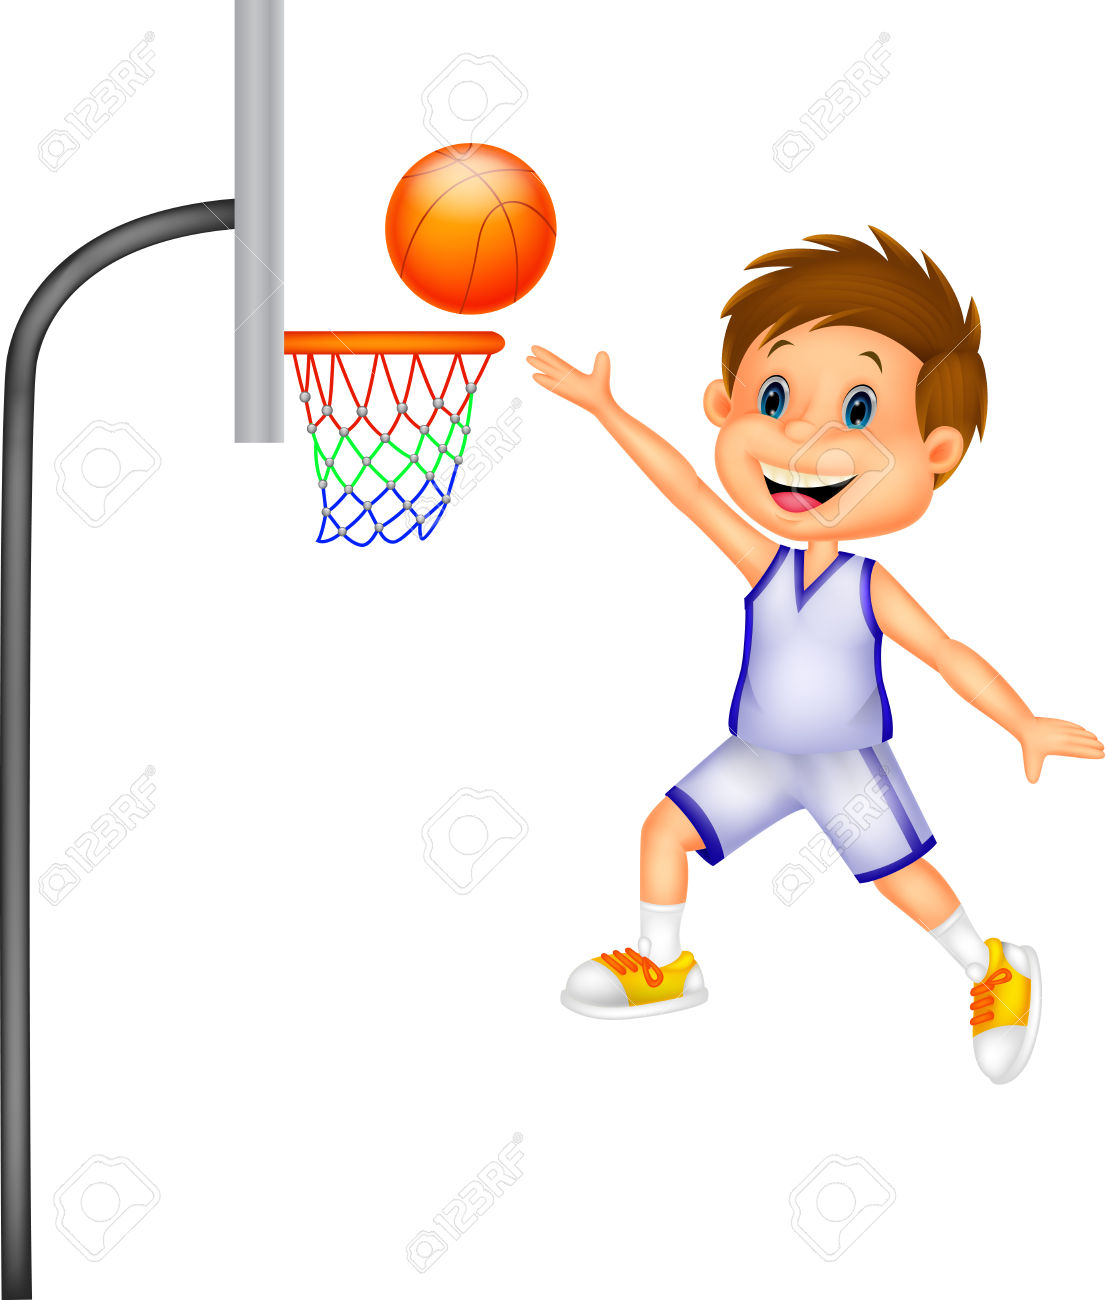 a boy playing basketball clipart - Clipground